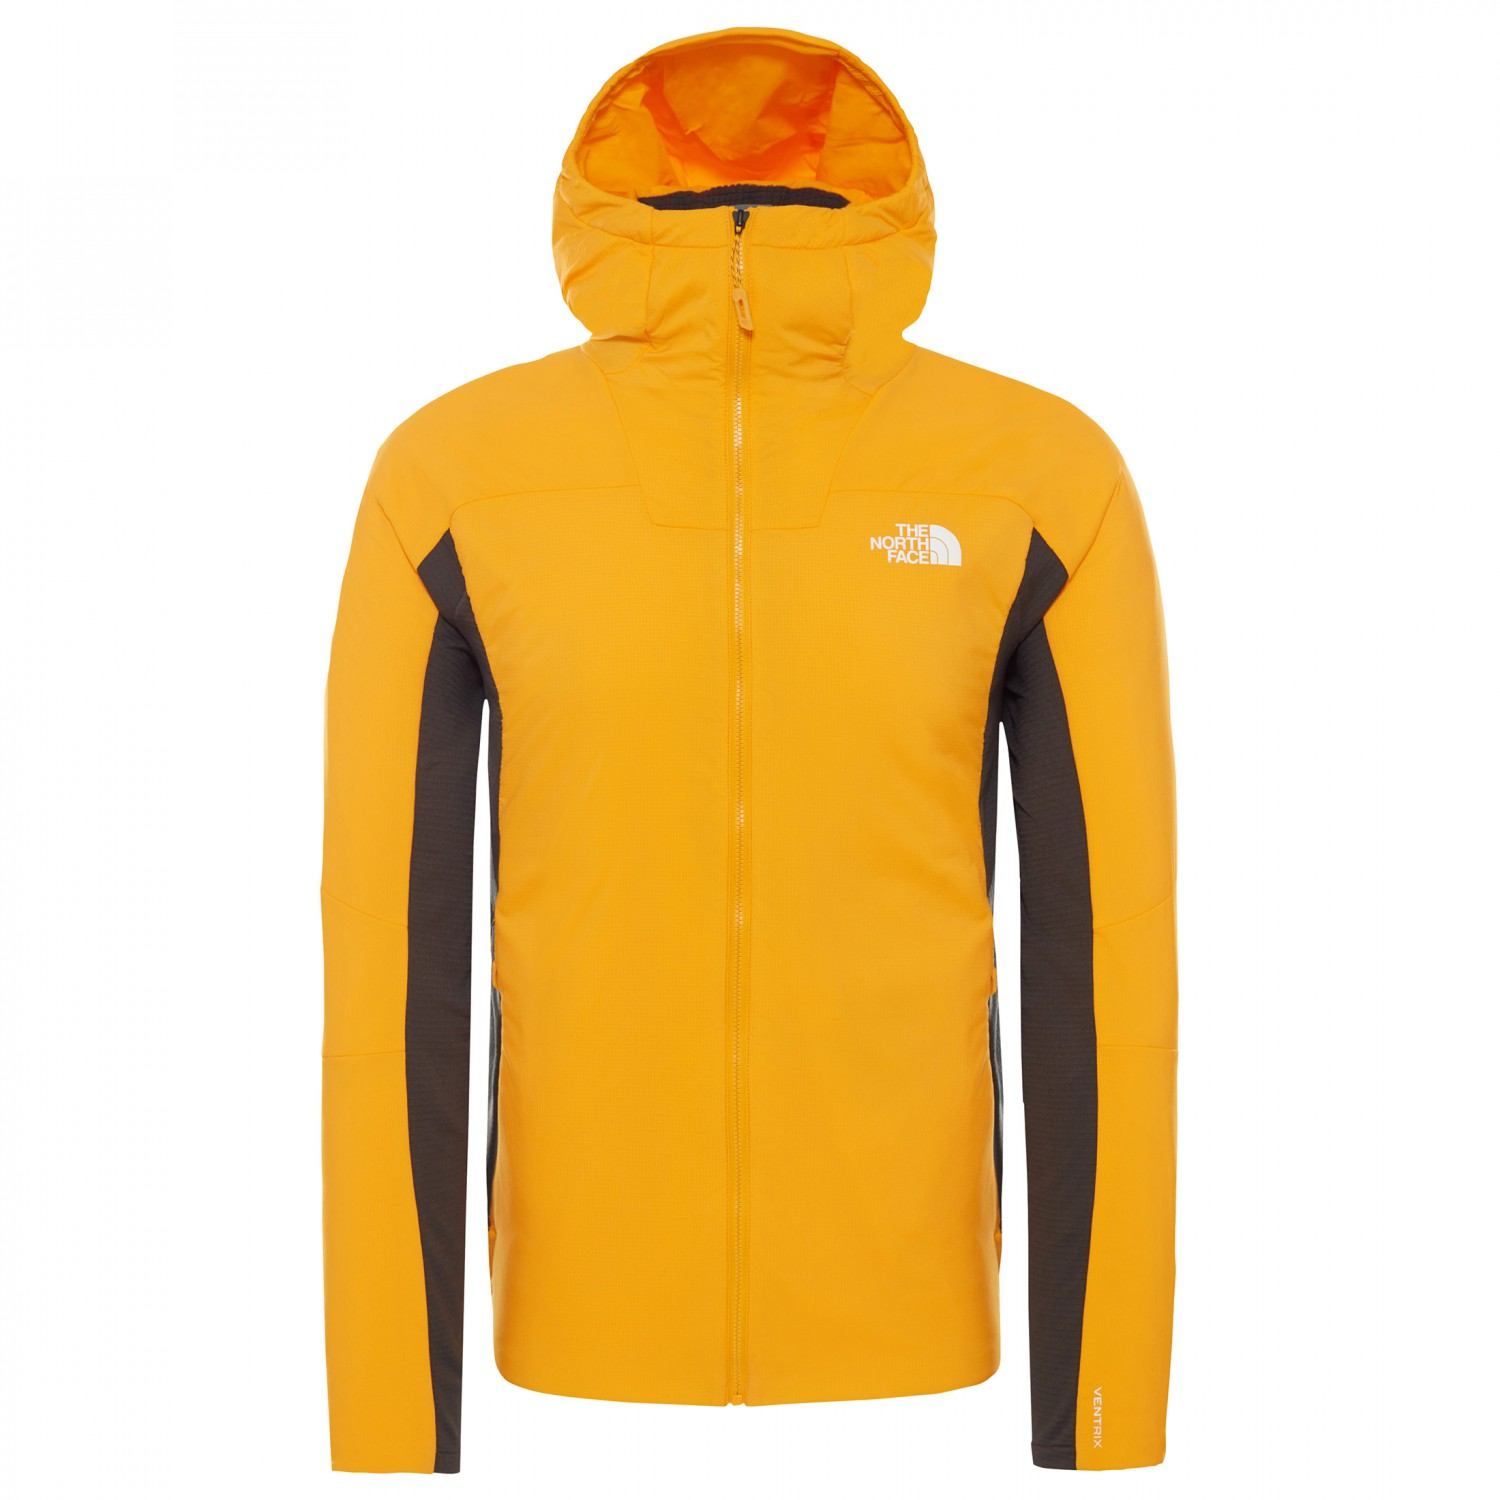 d06e6ec87 The North Face - Ventrix Hybrid Jacket - Fleece jacket - Zinnia Orange /  Asphalt Gry | M